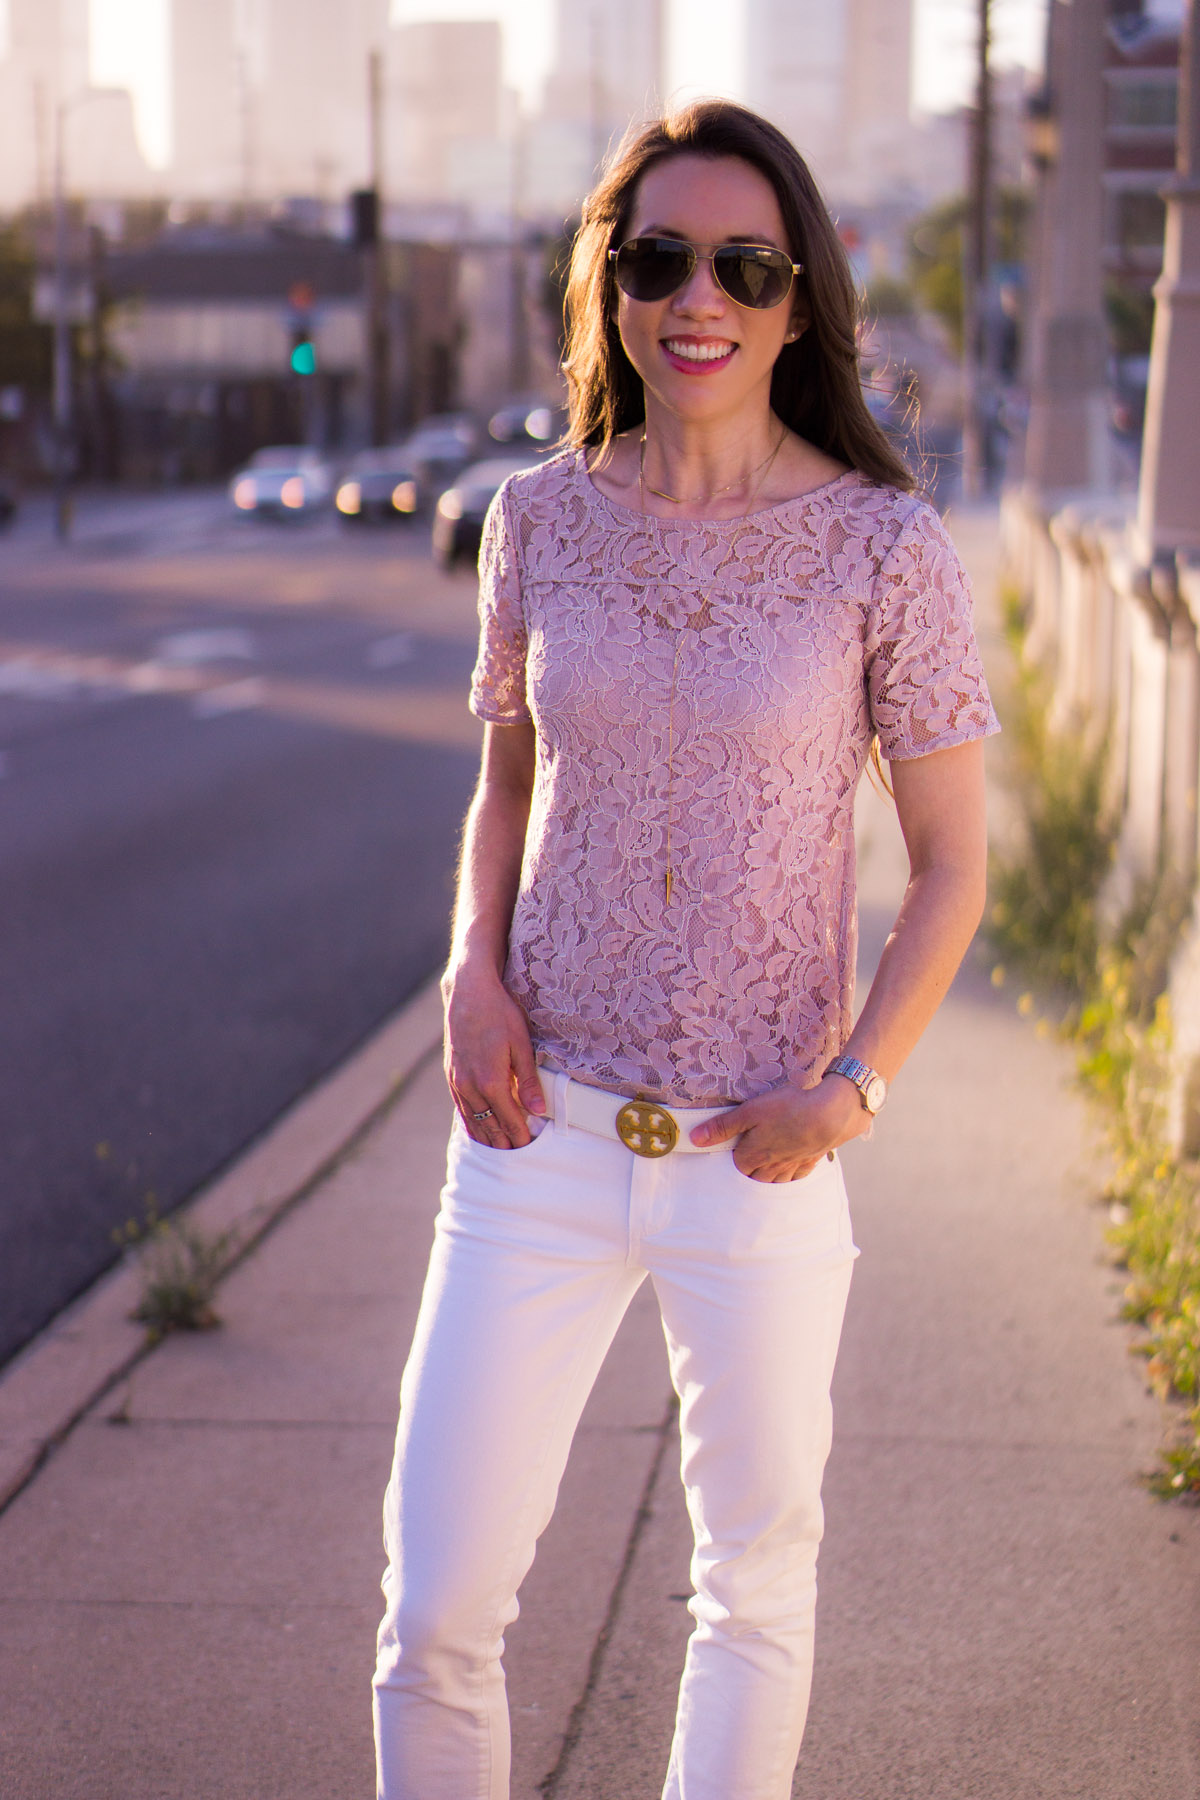 5 Reasons To Wear Lace Tops Why I Love Lace Tops